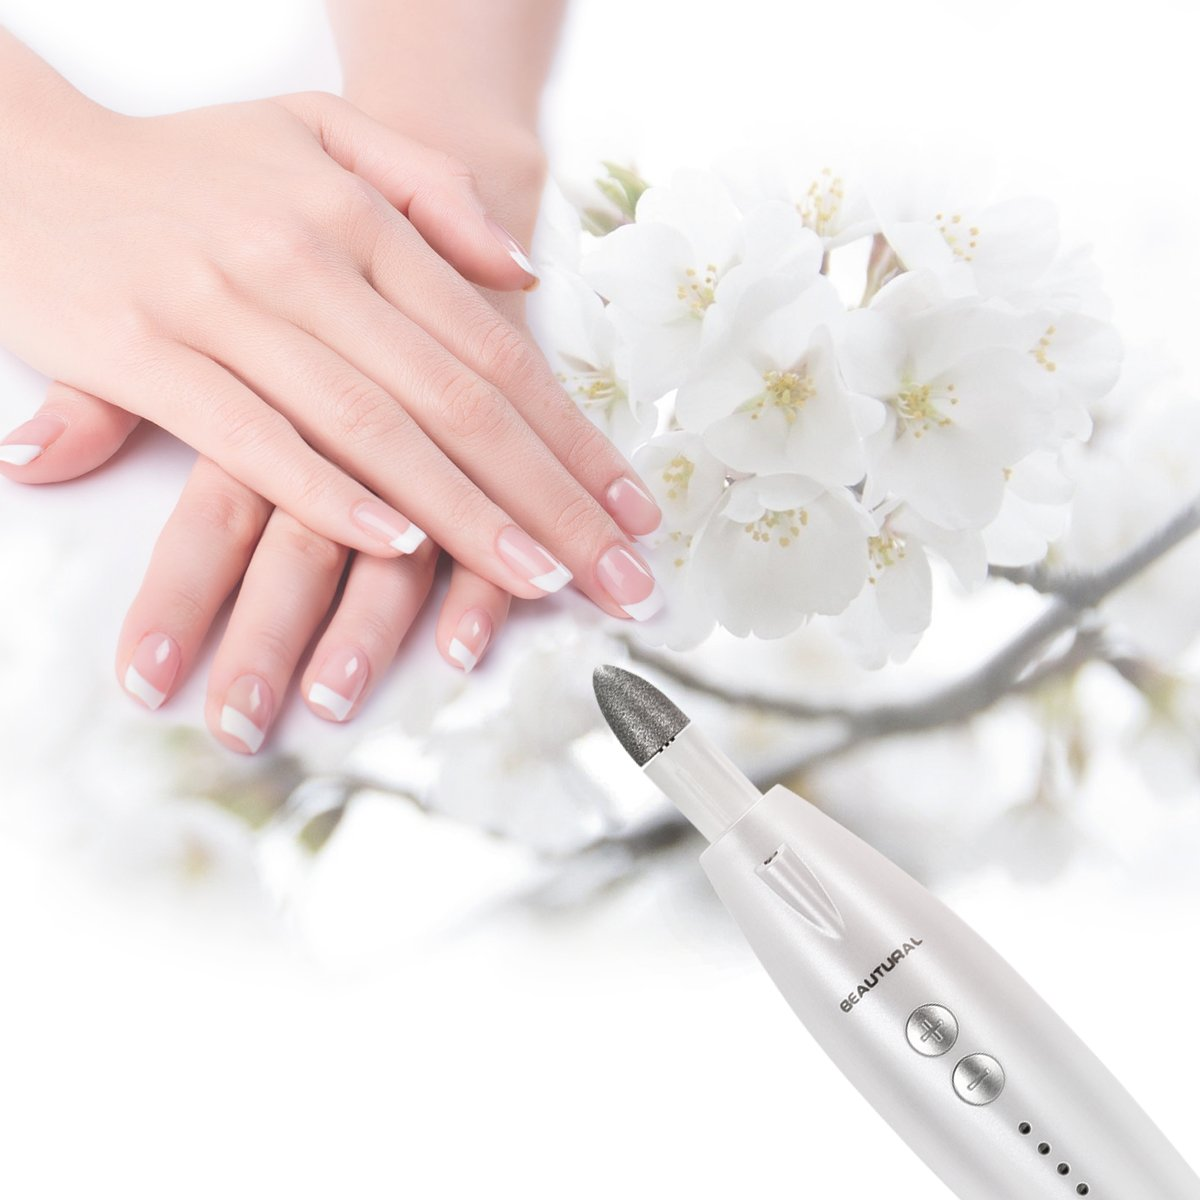 Beautural Professional Electric Manicure & Pedicure Kit - Powerful Nail Drill and 7 Attachment Nail Polishing System for Finger and Toe Nail Care by Beautural (Image #5)